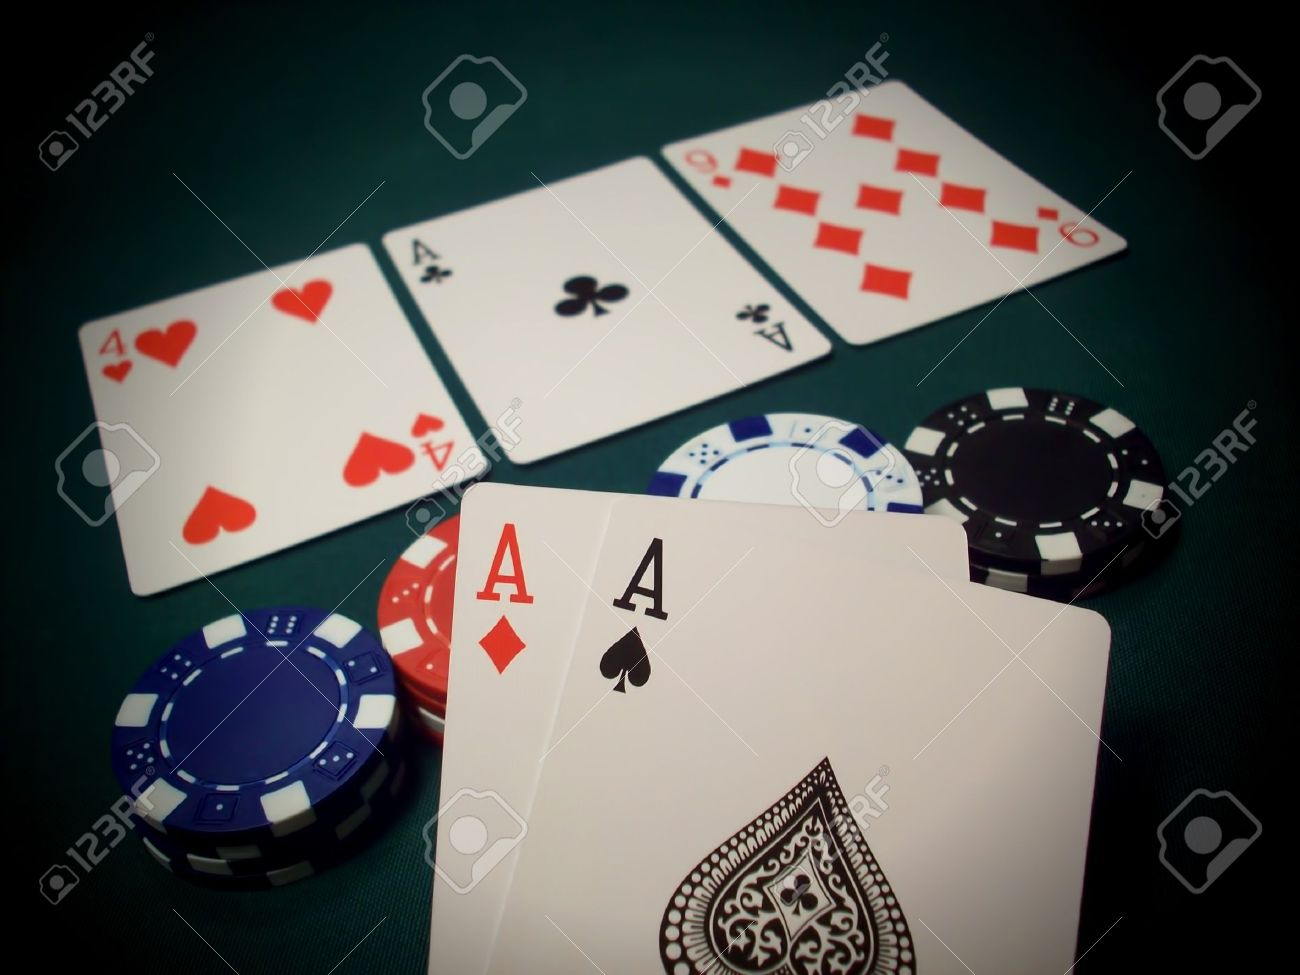 9739116-Three-cards-face-up-and-multi-colored-poker-chips-on-a-green-felt-table-This-is-known-as-The-Flop-in-Stock-Photo